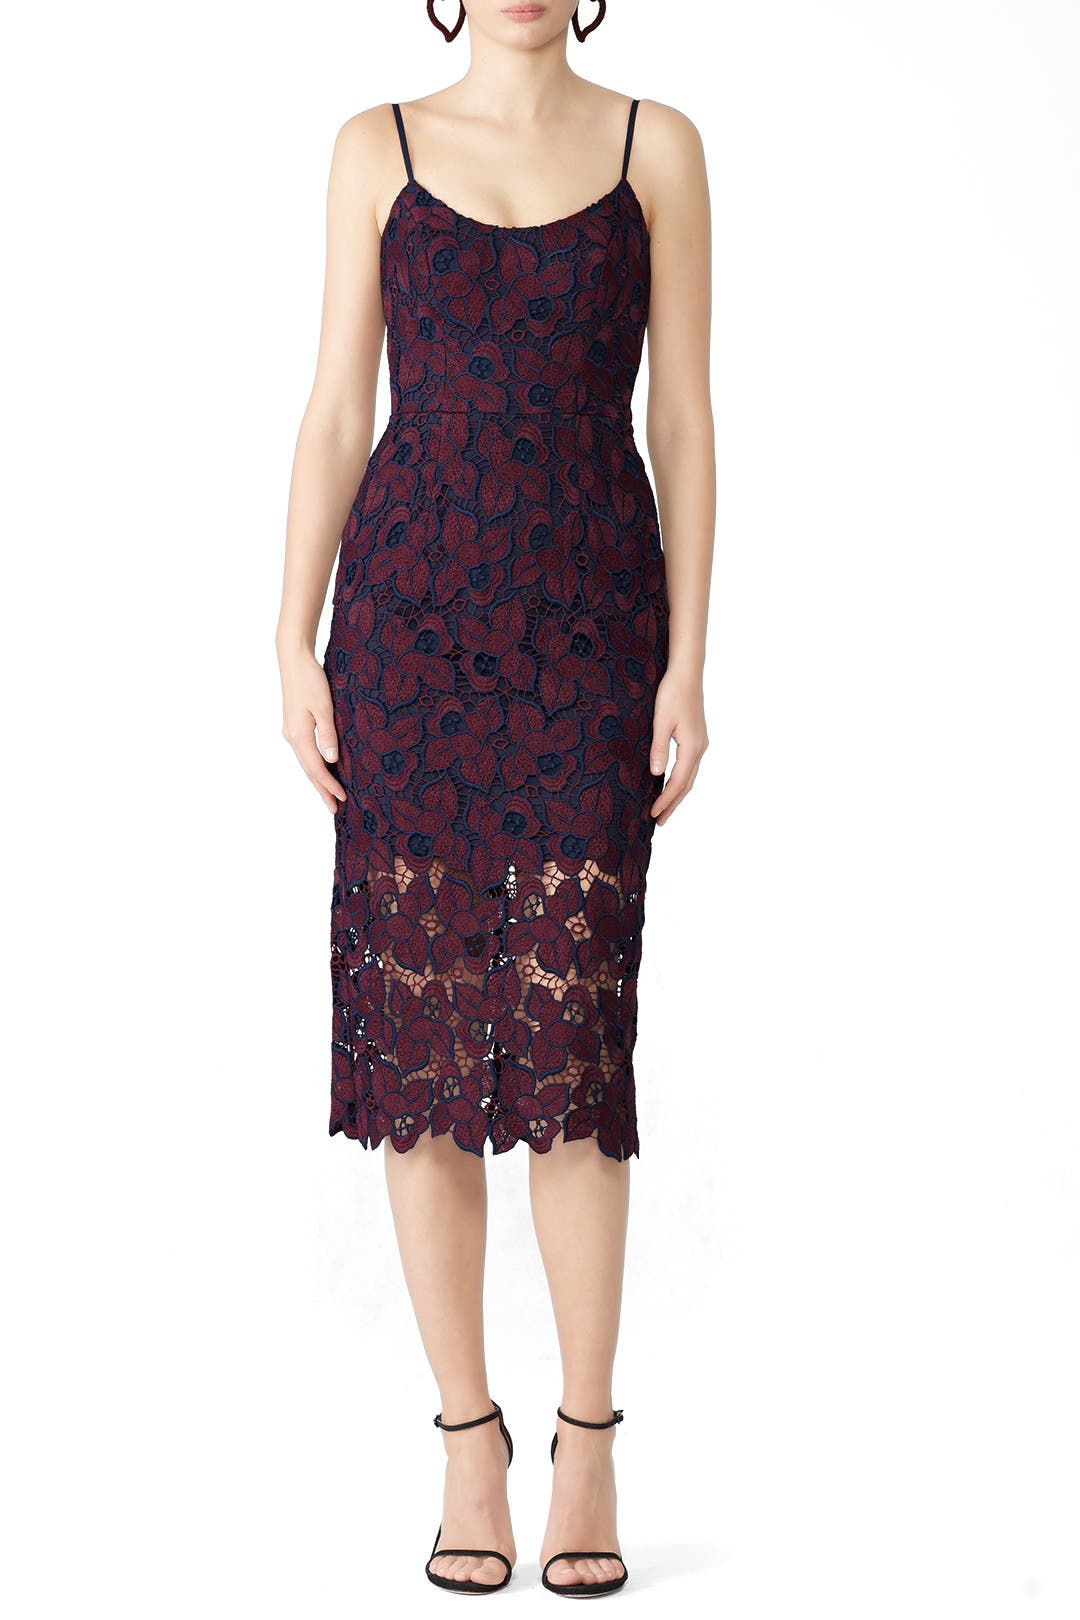 94eaad19 Plum Lace Aurora Dress by Dress The Population for $30 - $40 | Rent the  Runway